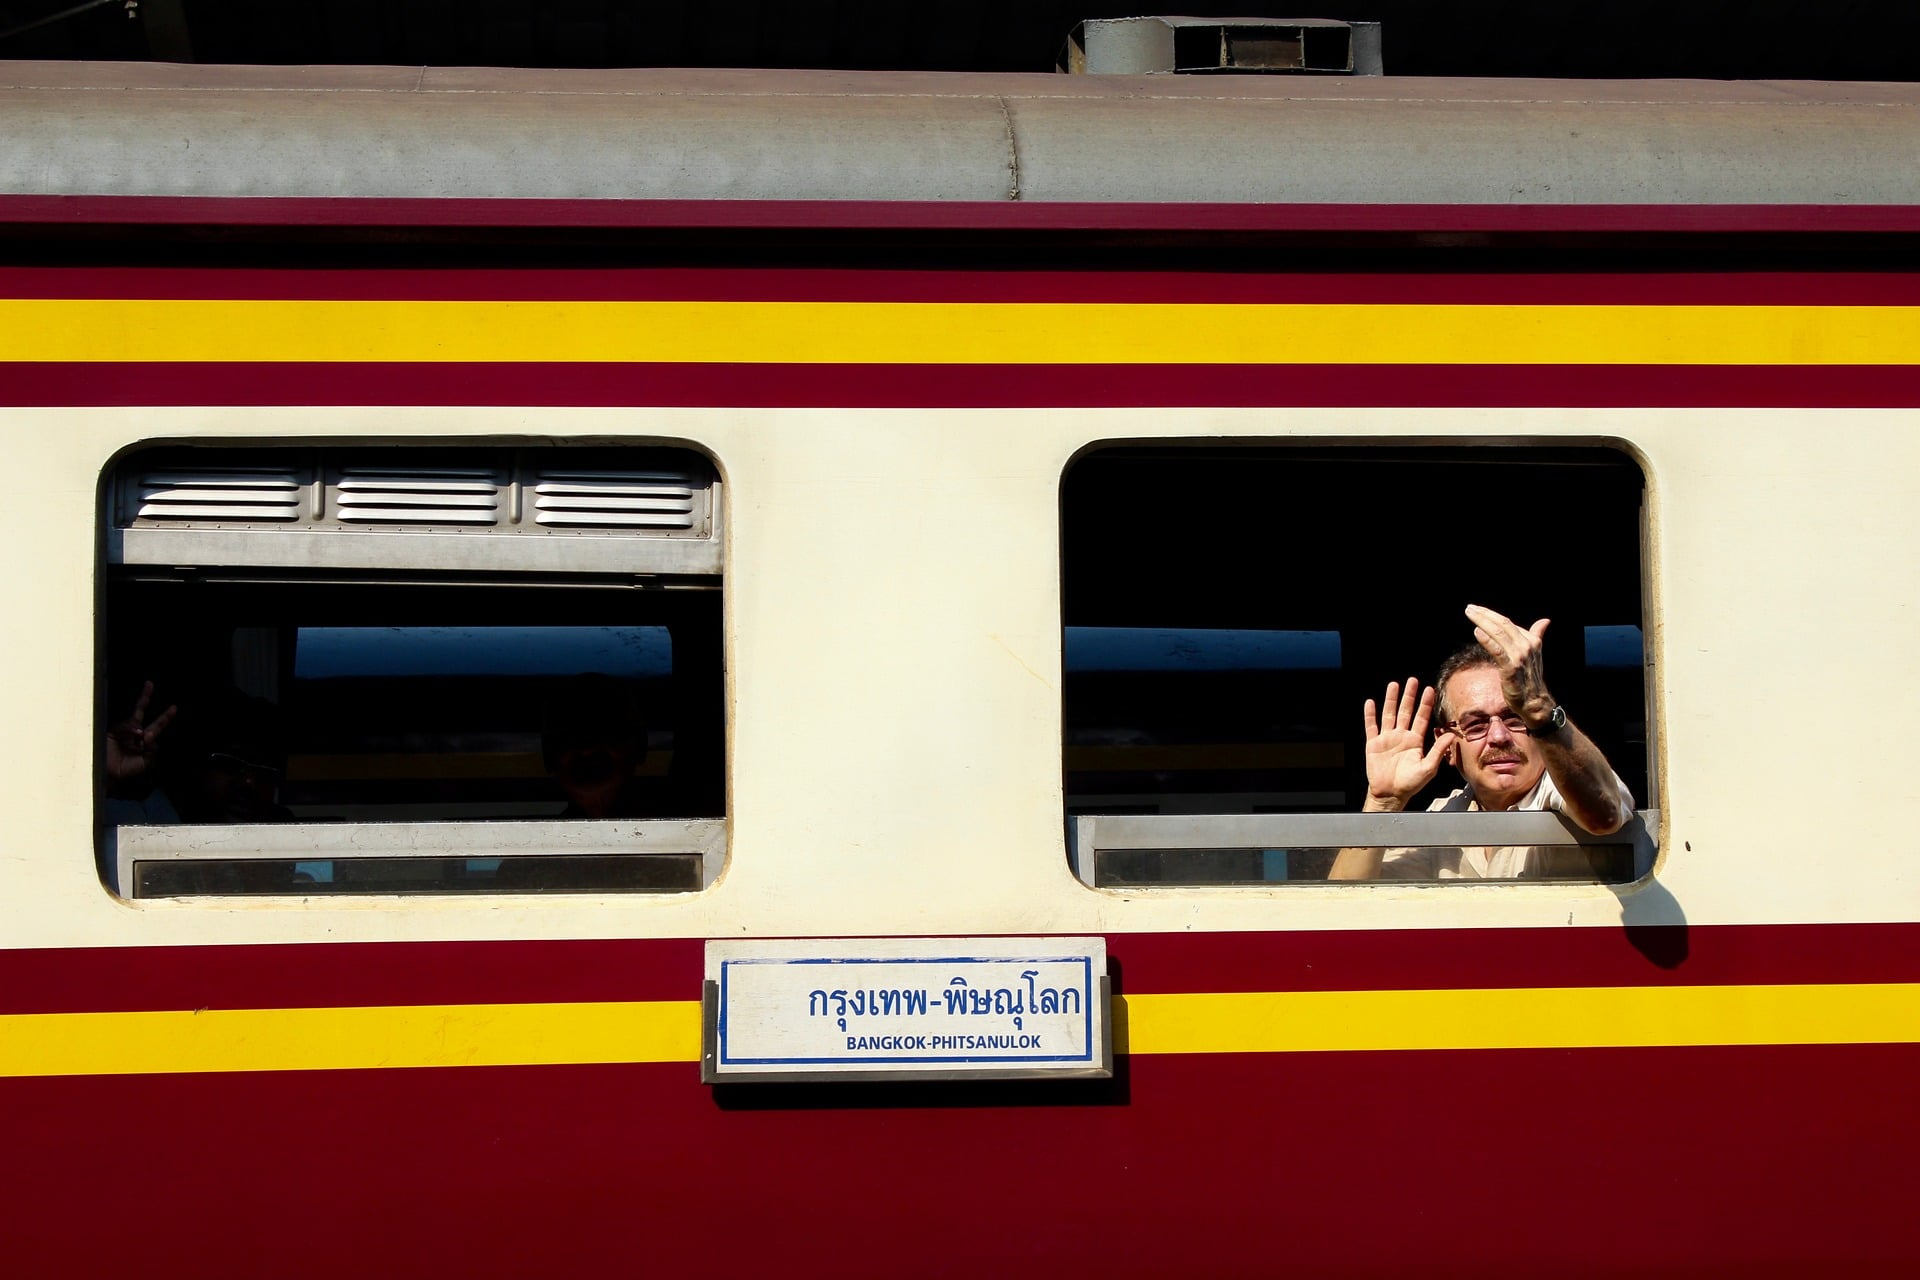 bangkok to pattaya by train